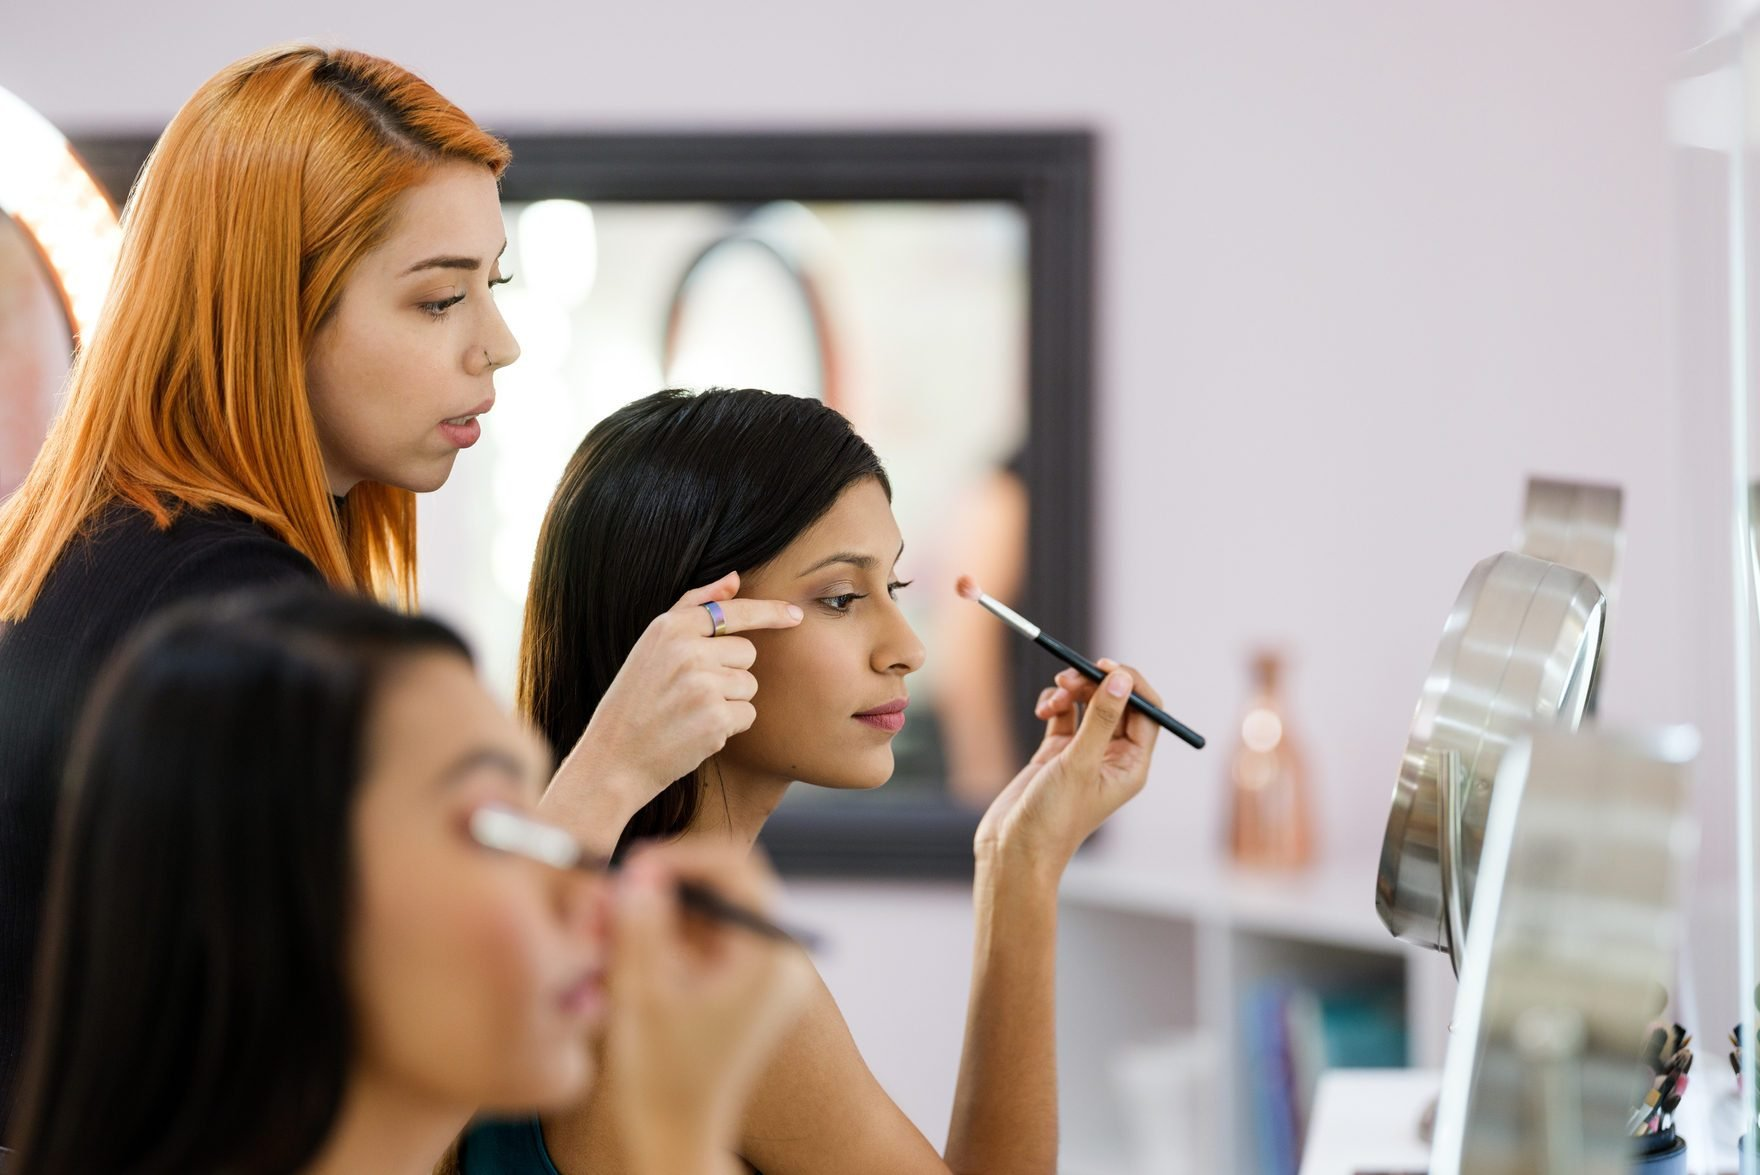 Make-up artist teaching young women about make-up